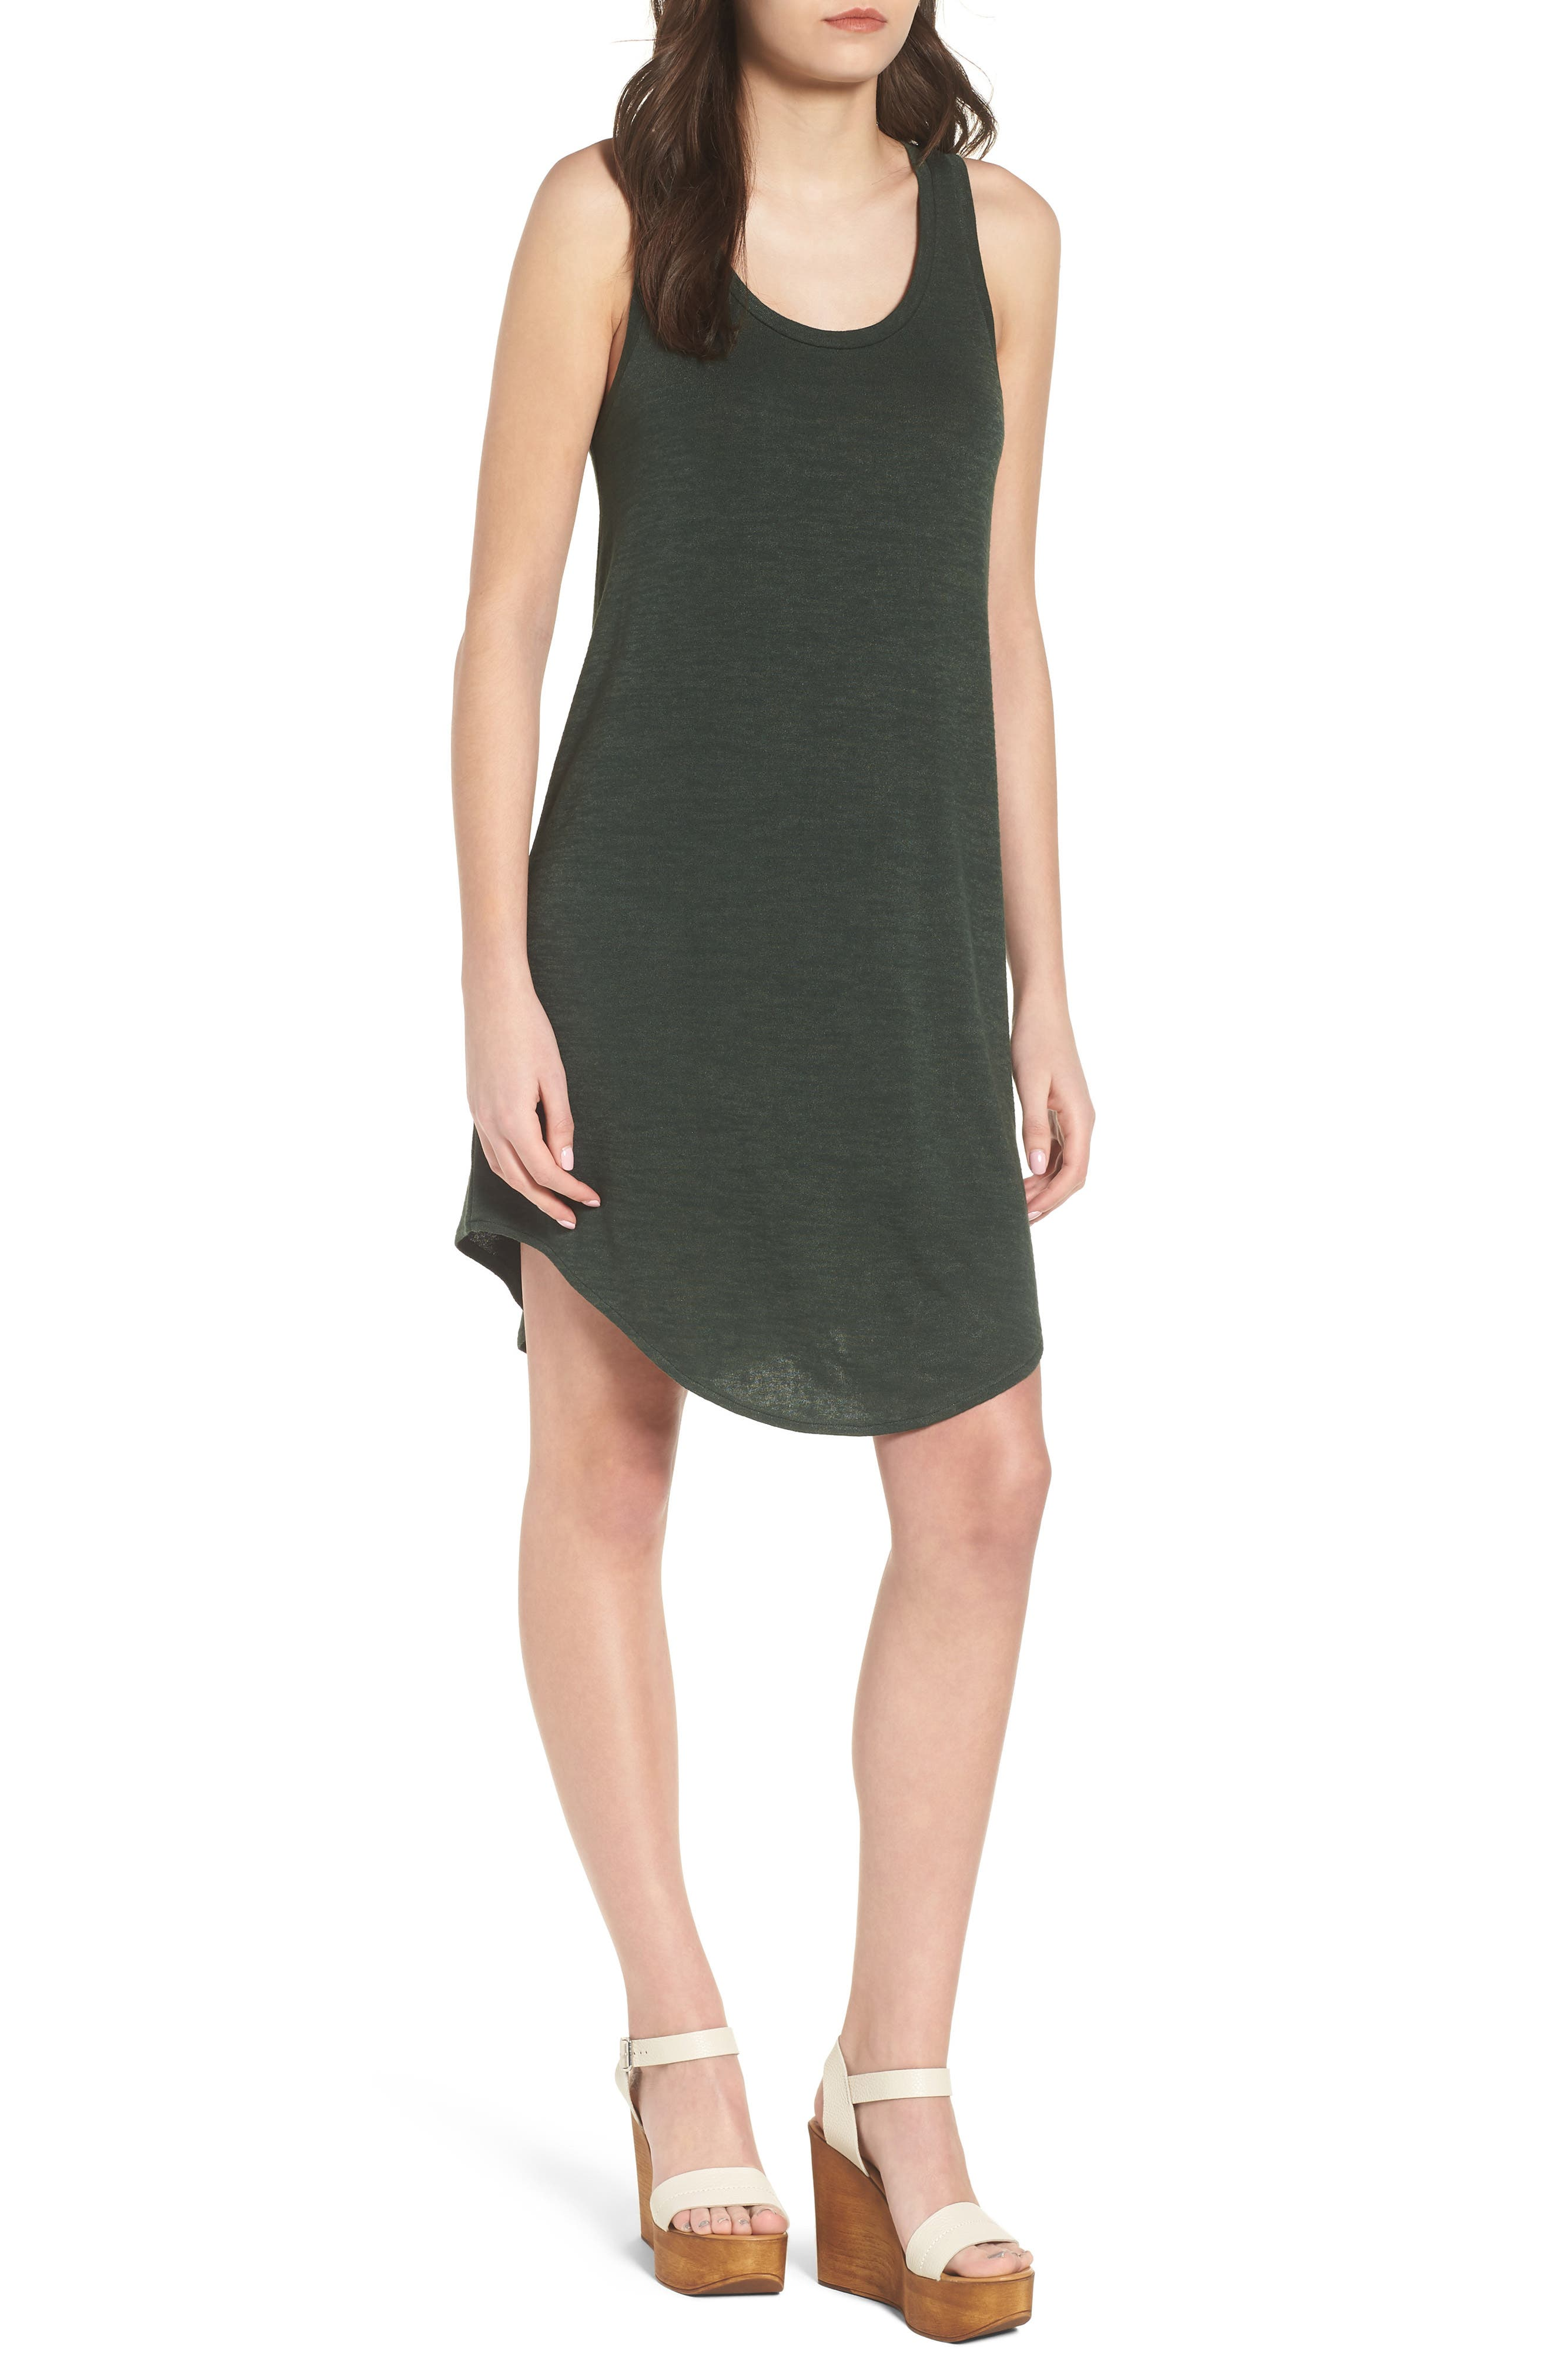 Dress for Women, Evening Cocktail Party On Sale, Military, Cotton, 2017, 8 Stella Jean